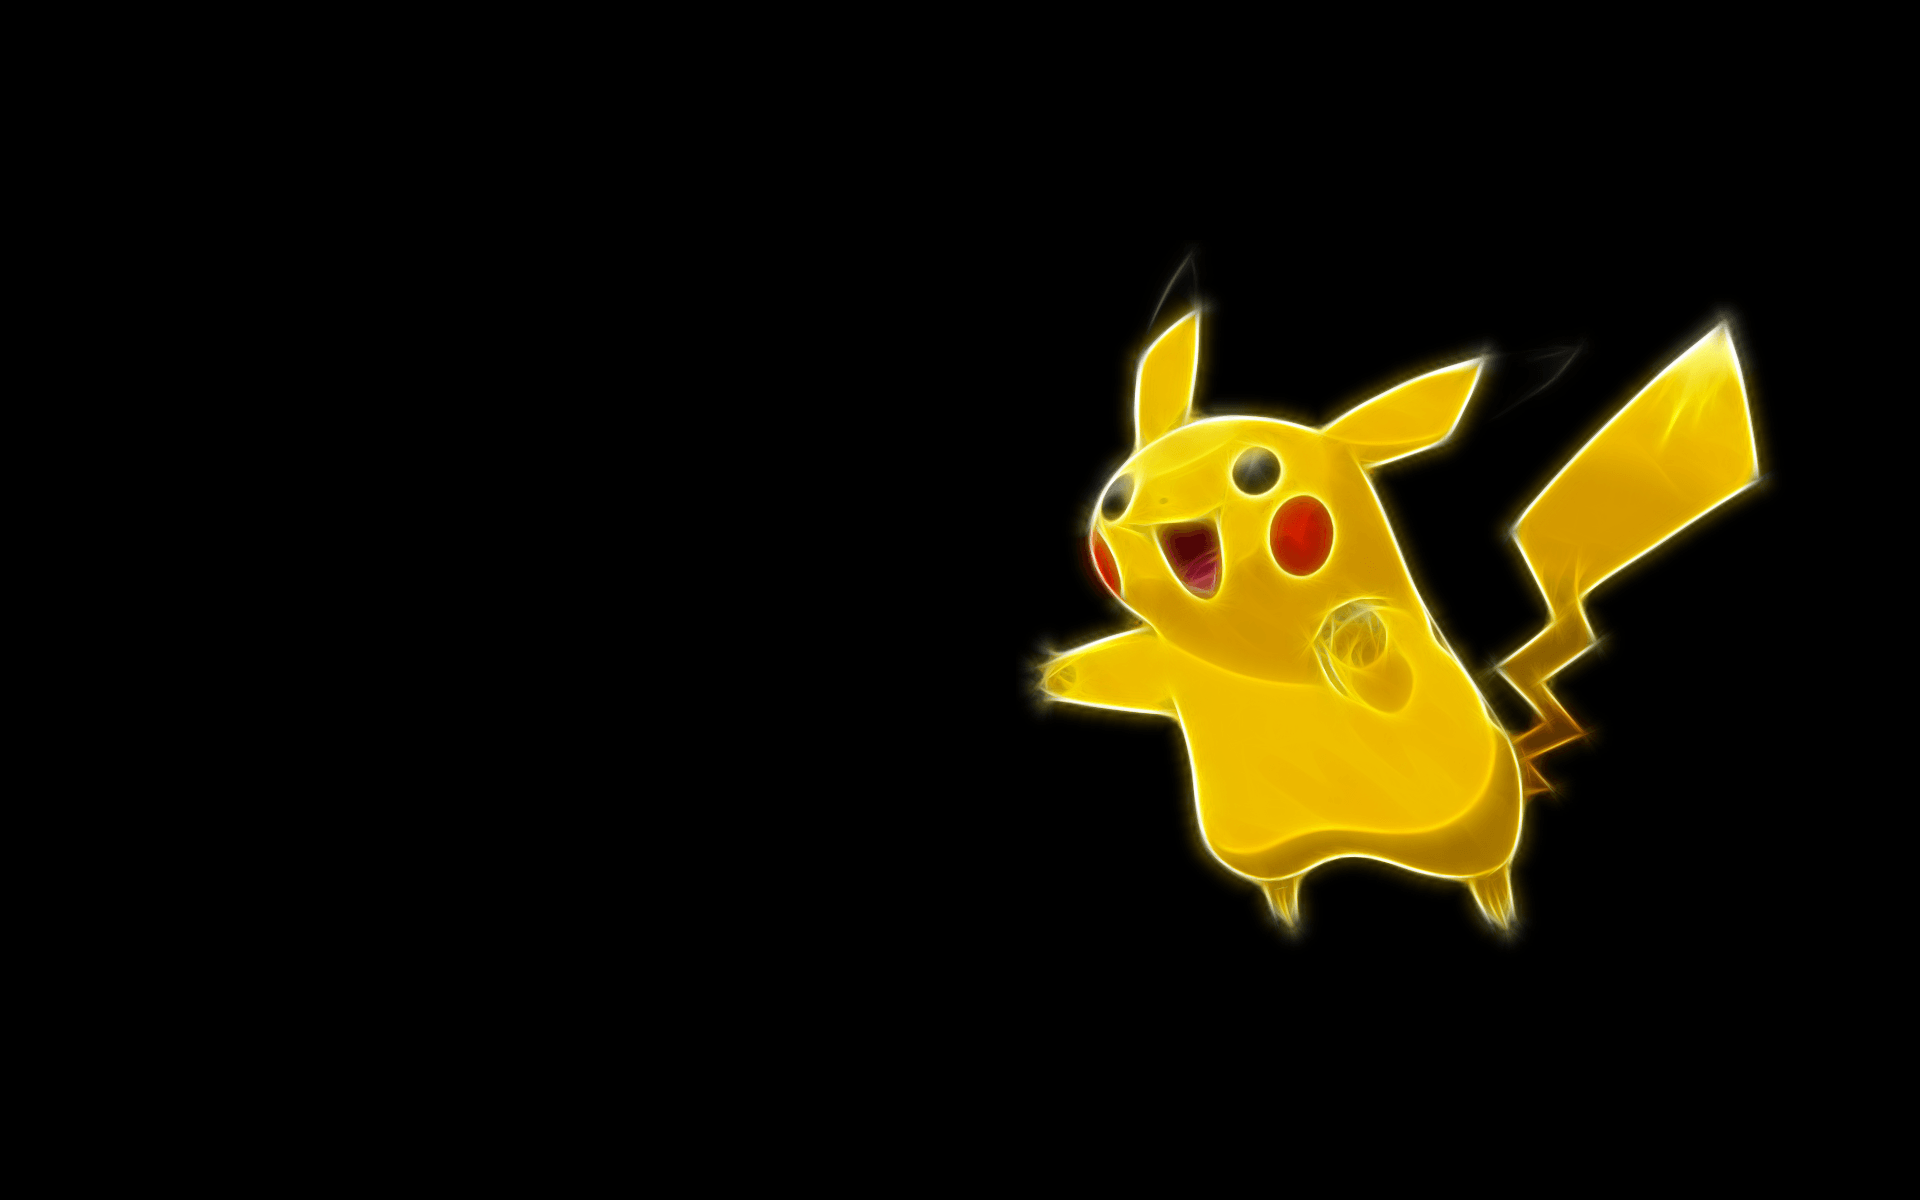 Pokemon Wallpapers Pikachu 1920x1200